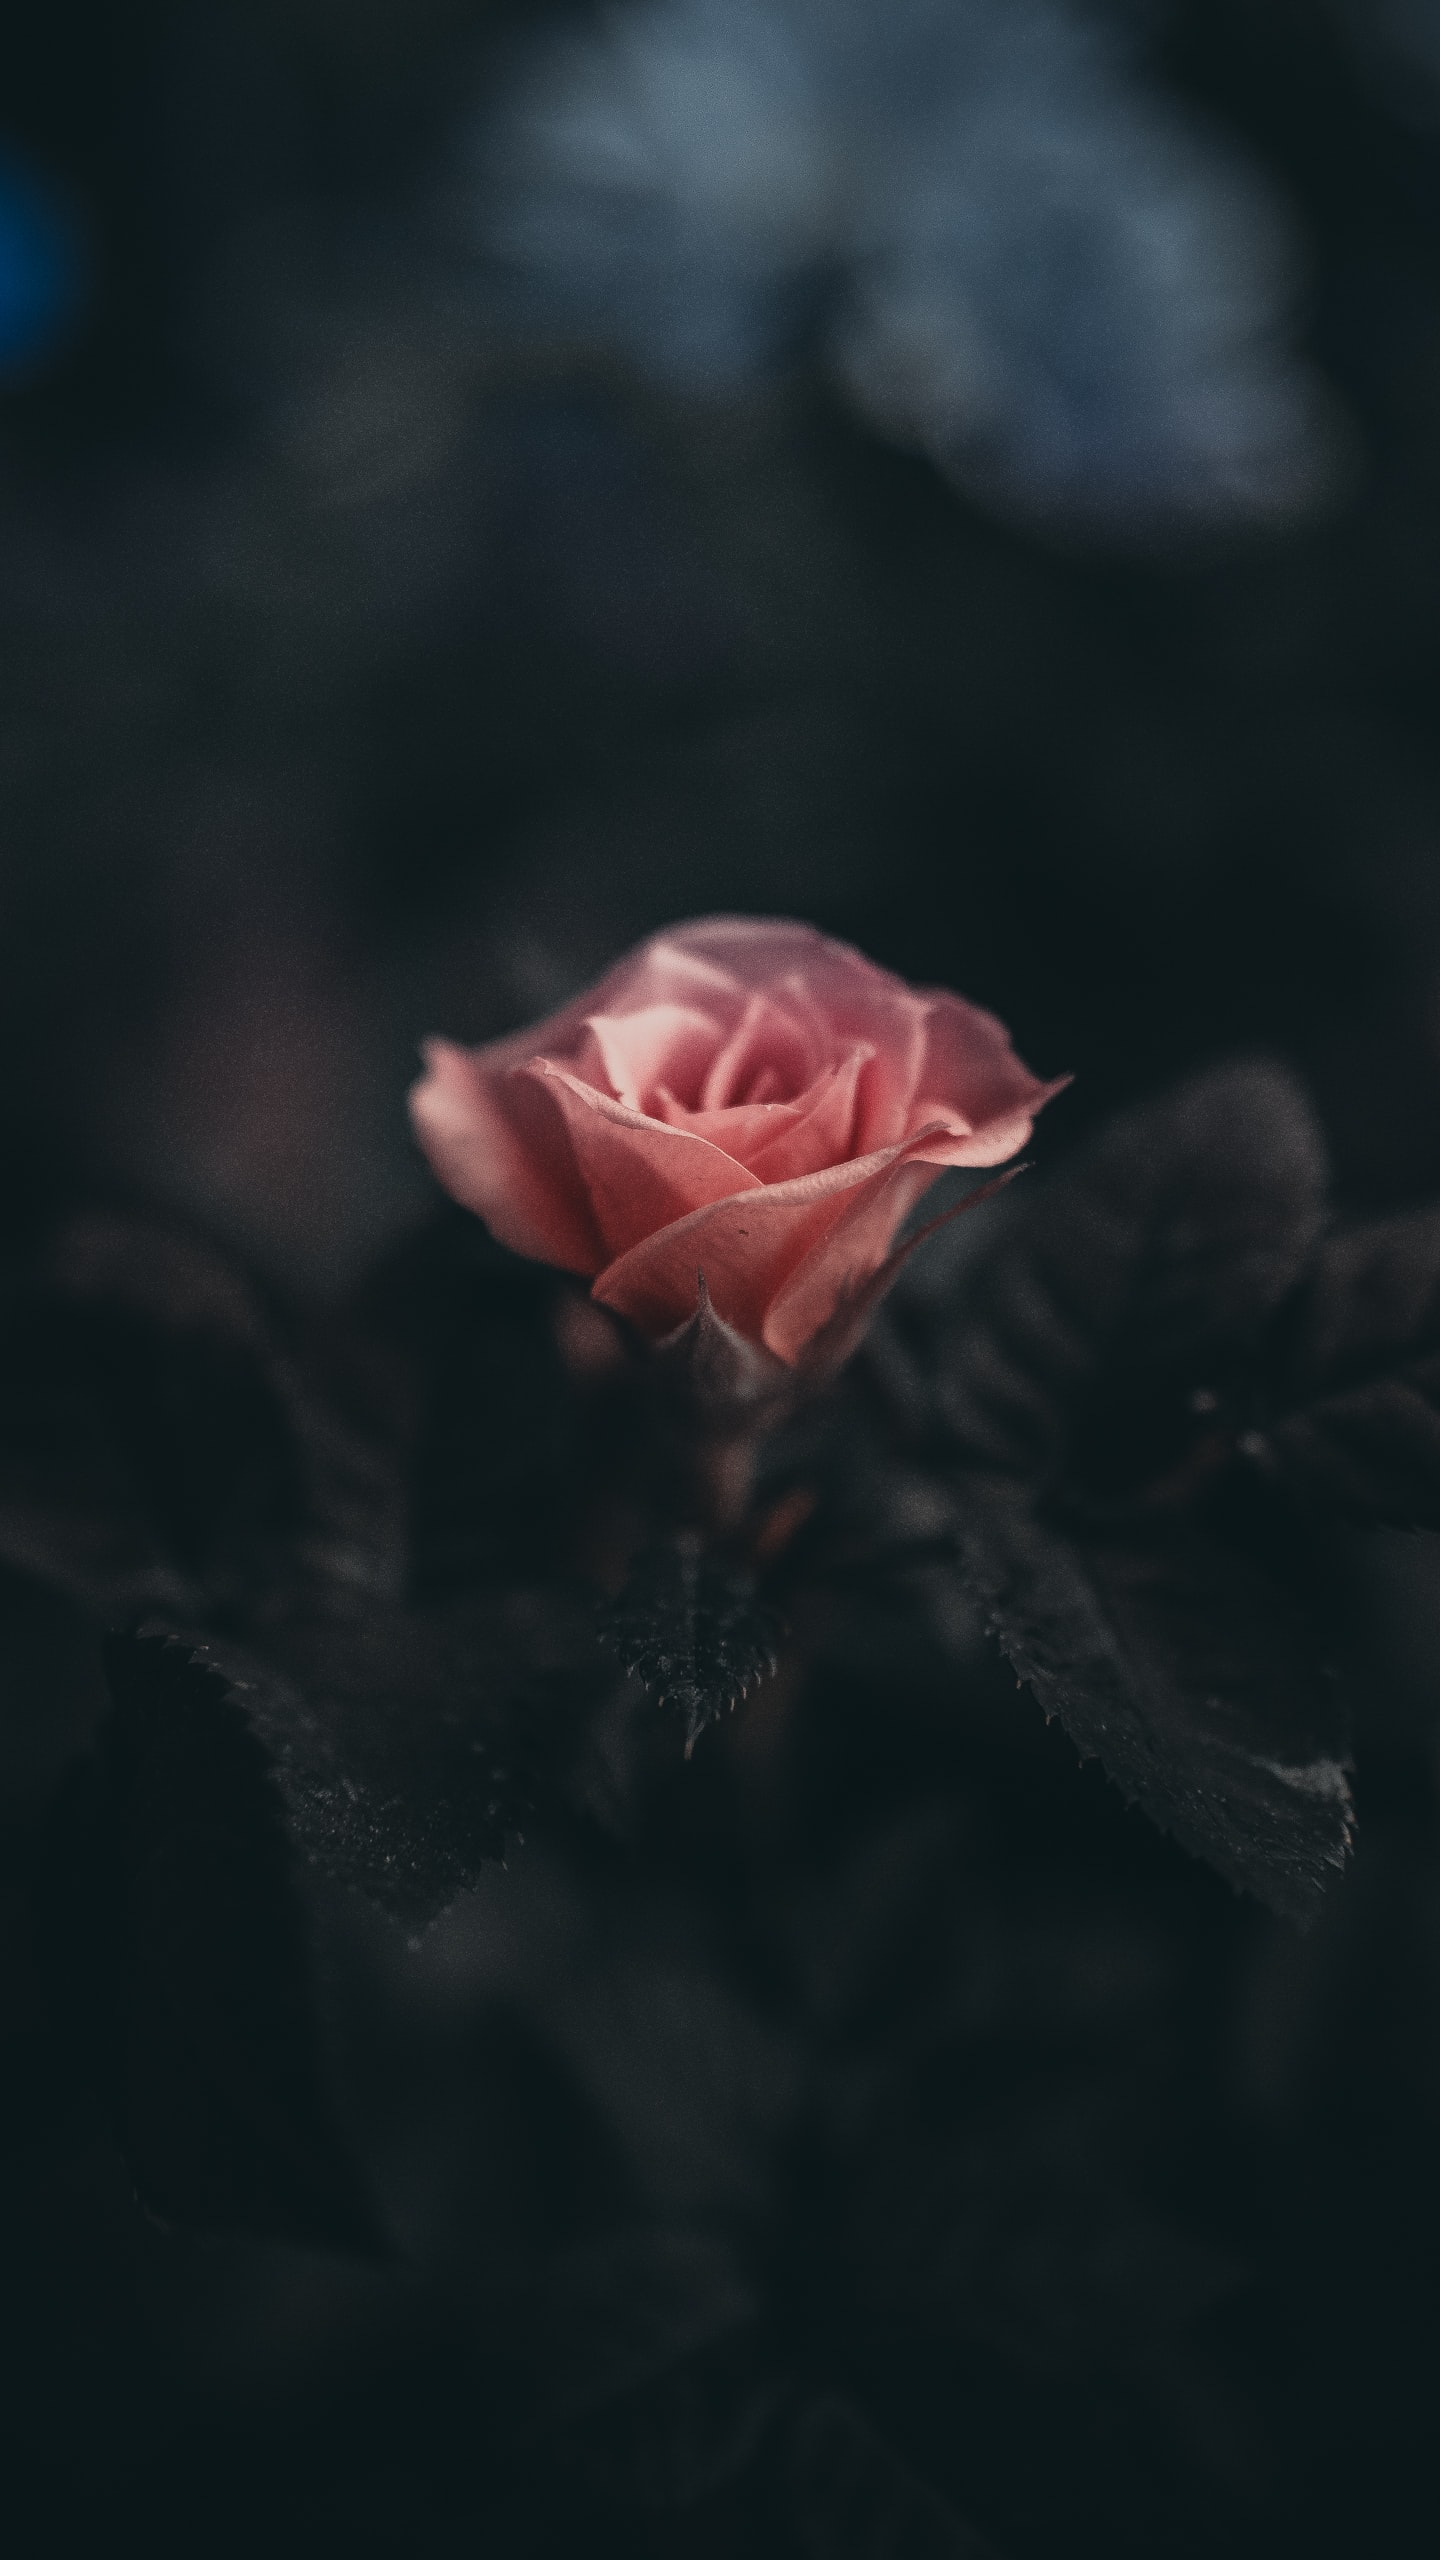 Dark Plant Pictures Download Free Images On Unsplash